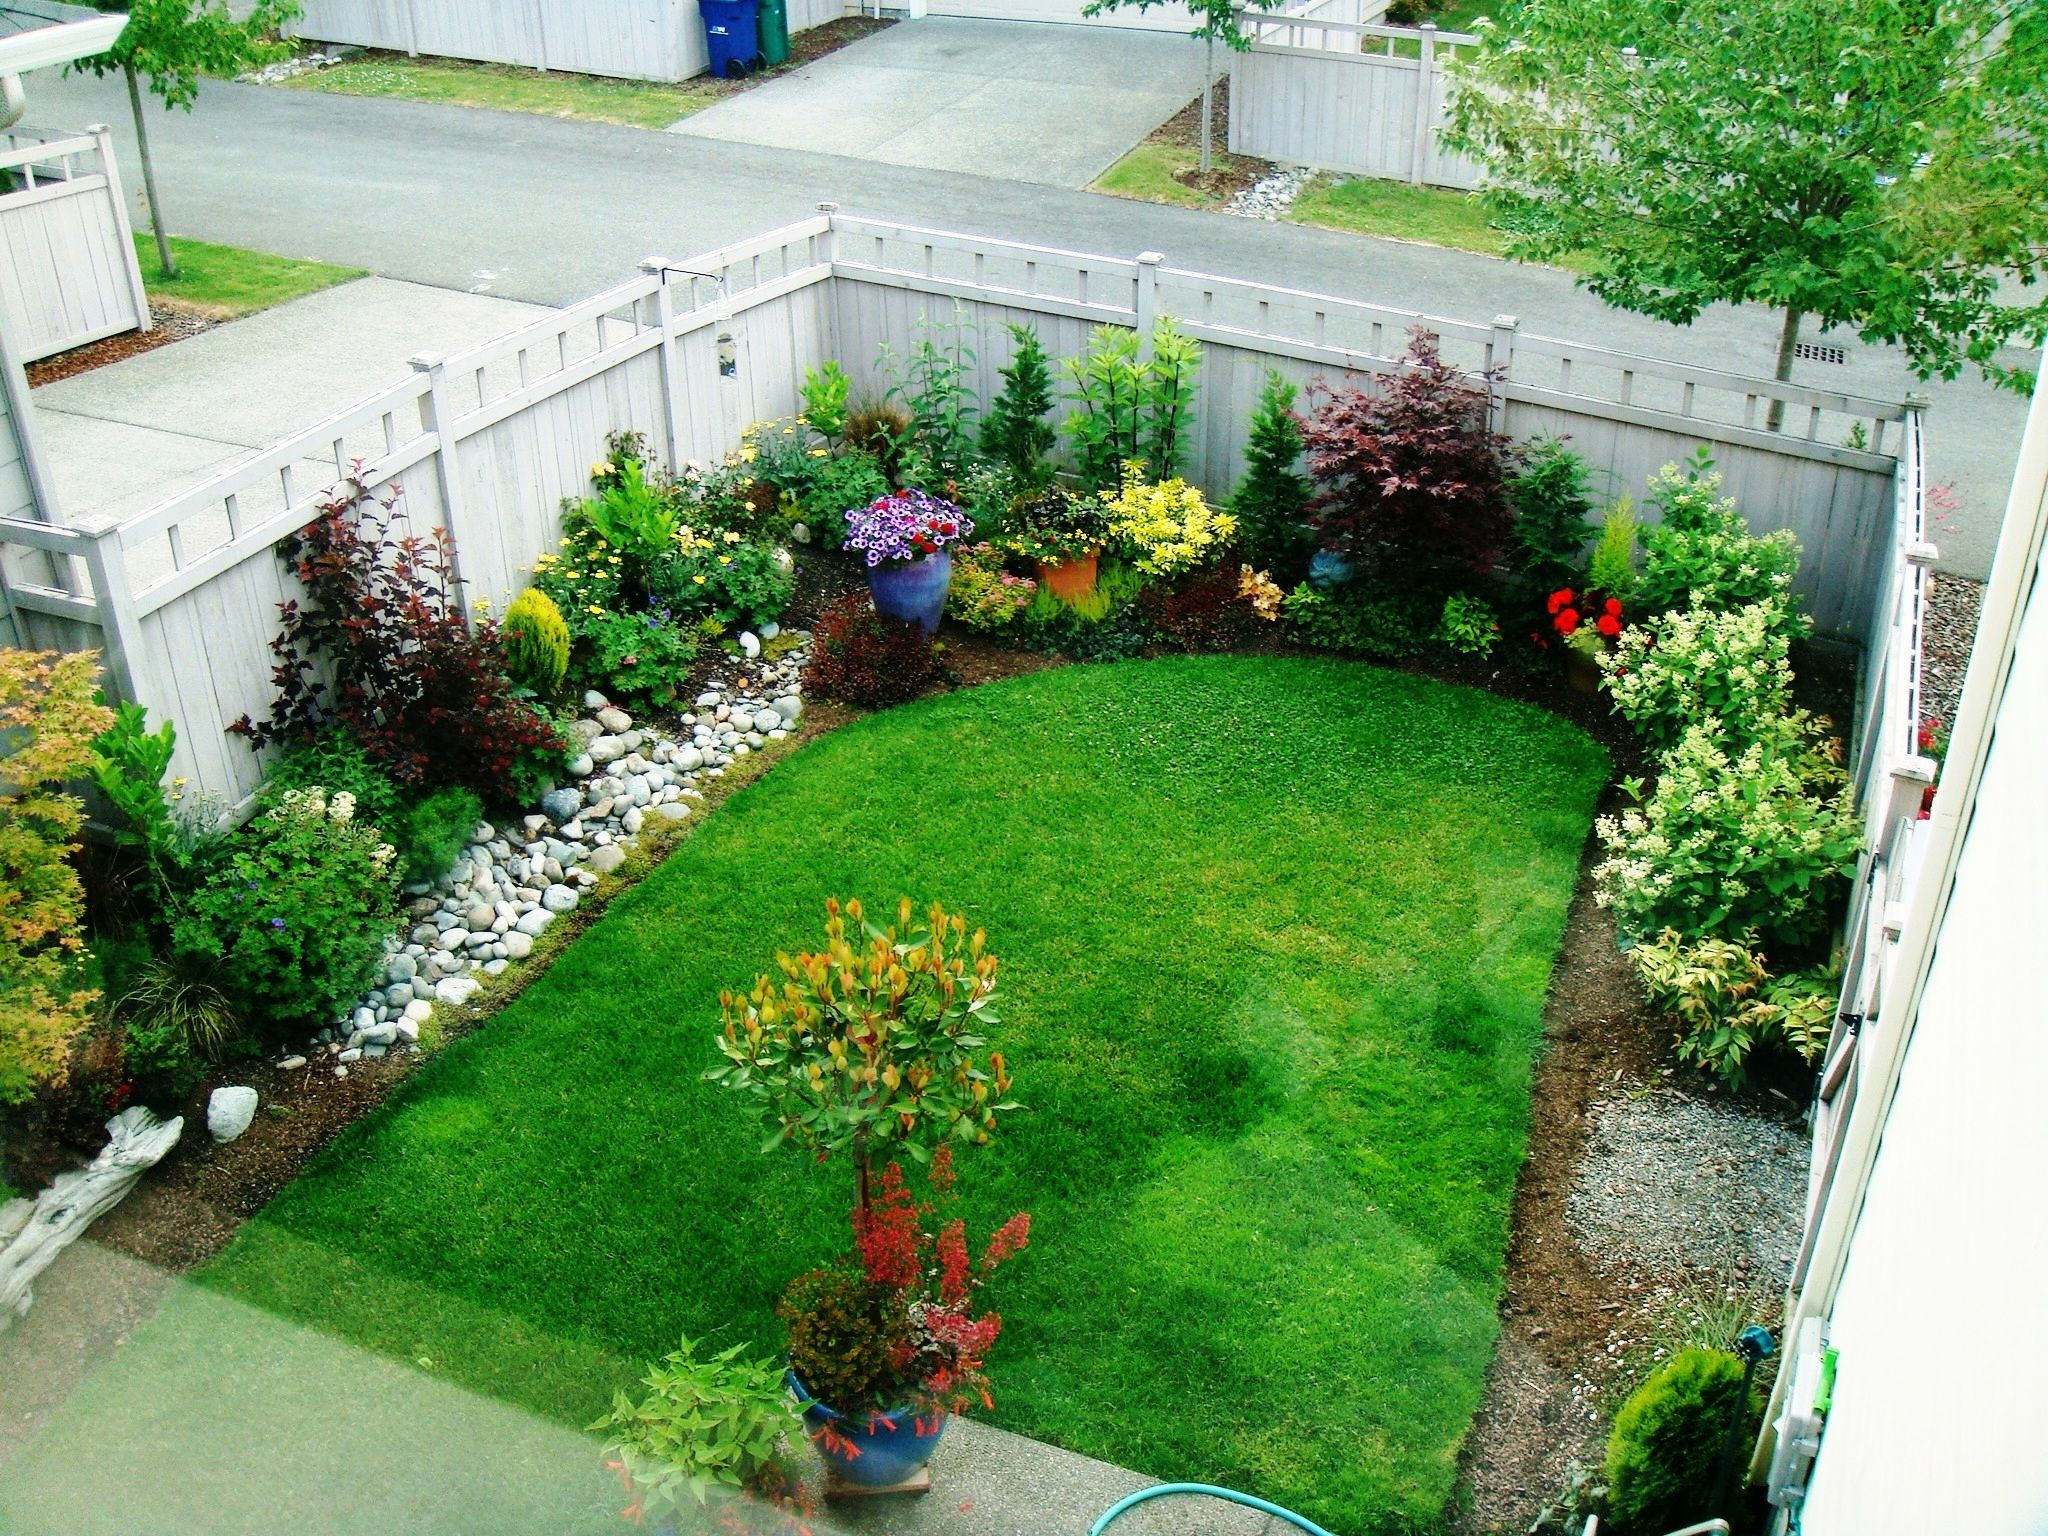 18 Garden Design For Small Backyard Piha Small Front Yard intended for Garden Ideas For Small Backyards